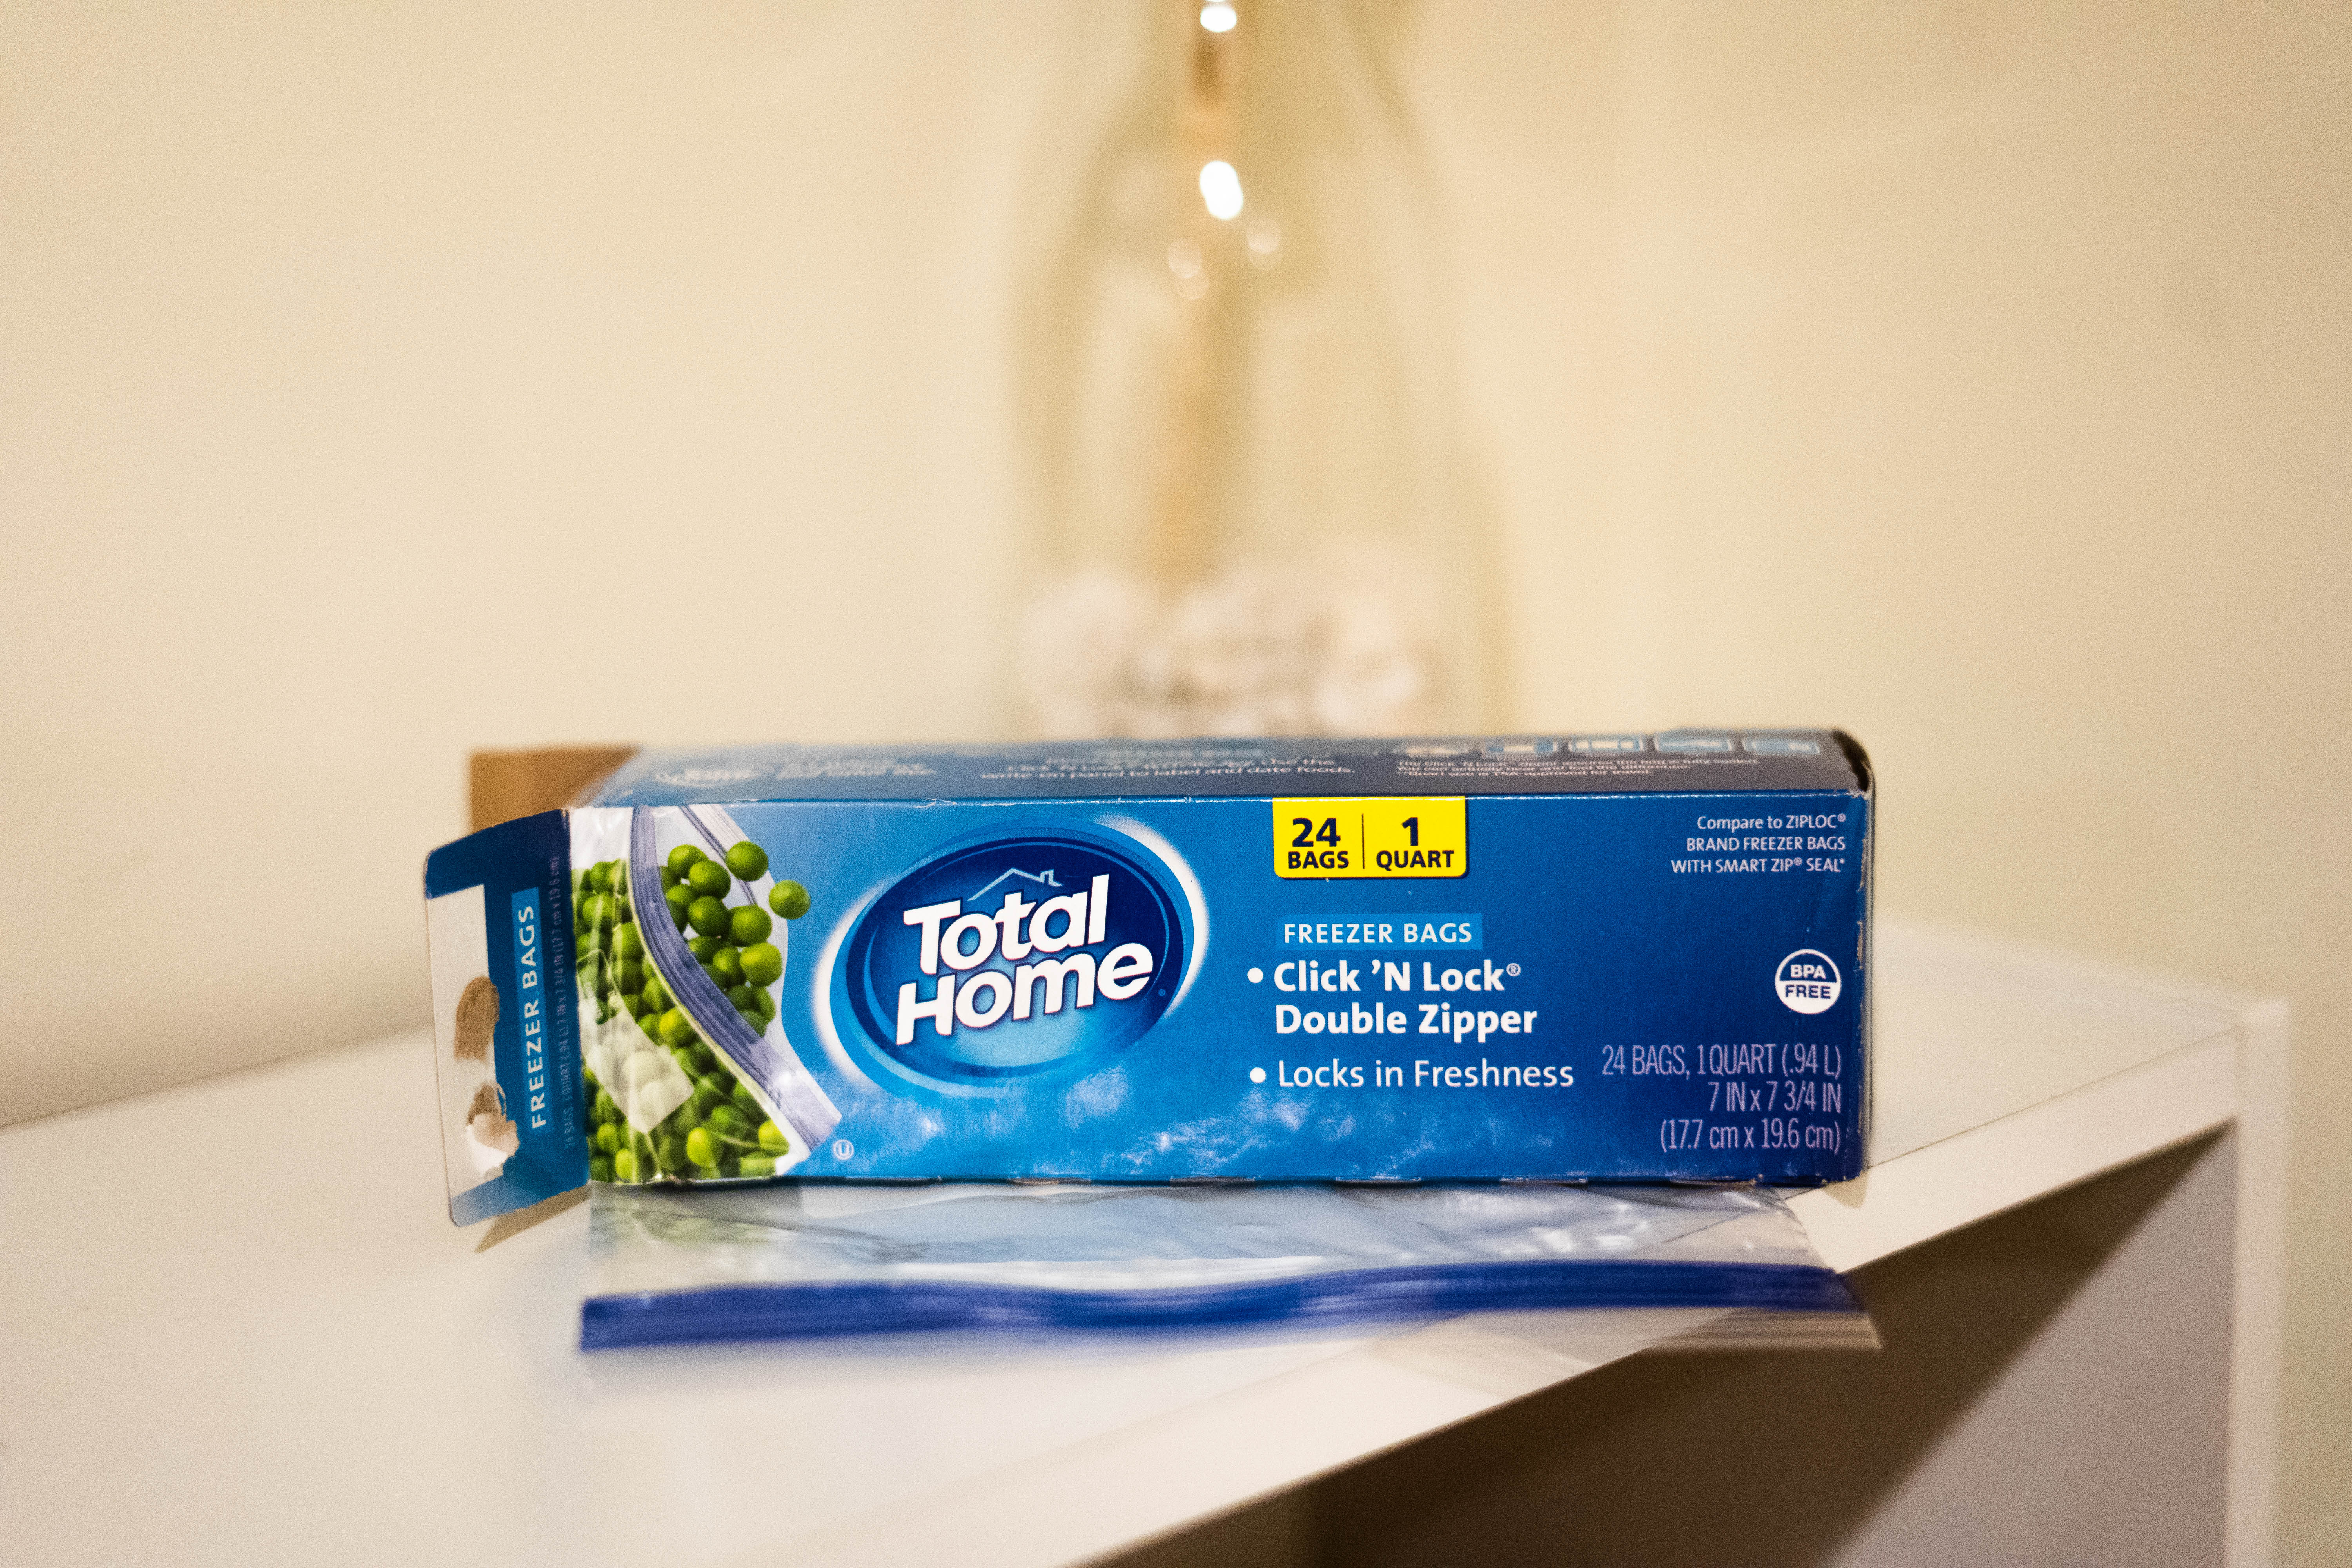 Ziploc bags for any travel and packing needs